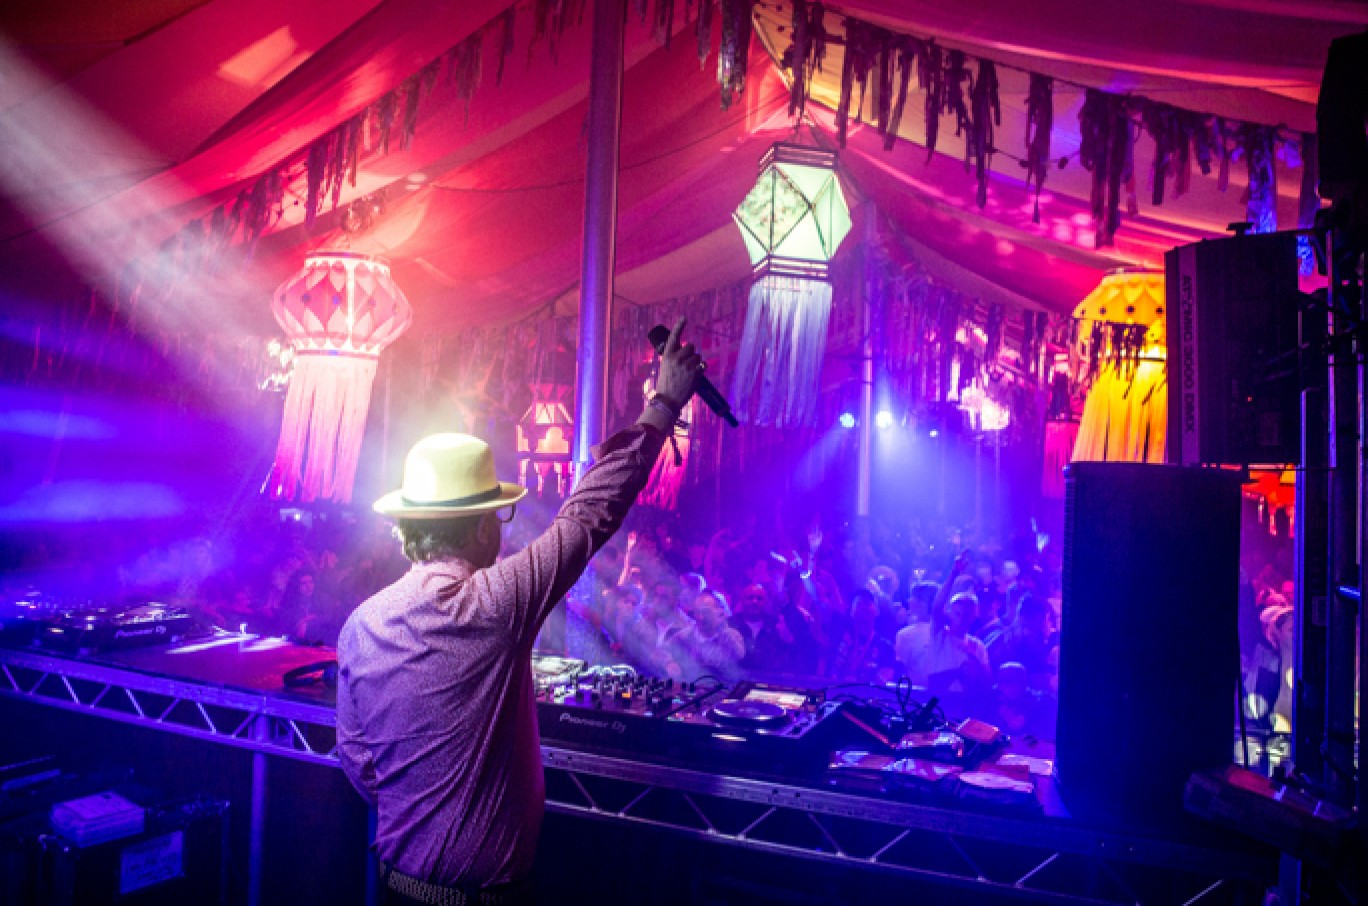 6_106-camp-bestival-friday-237281501585076